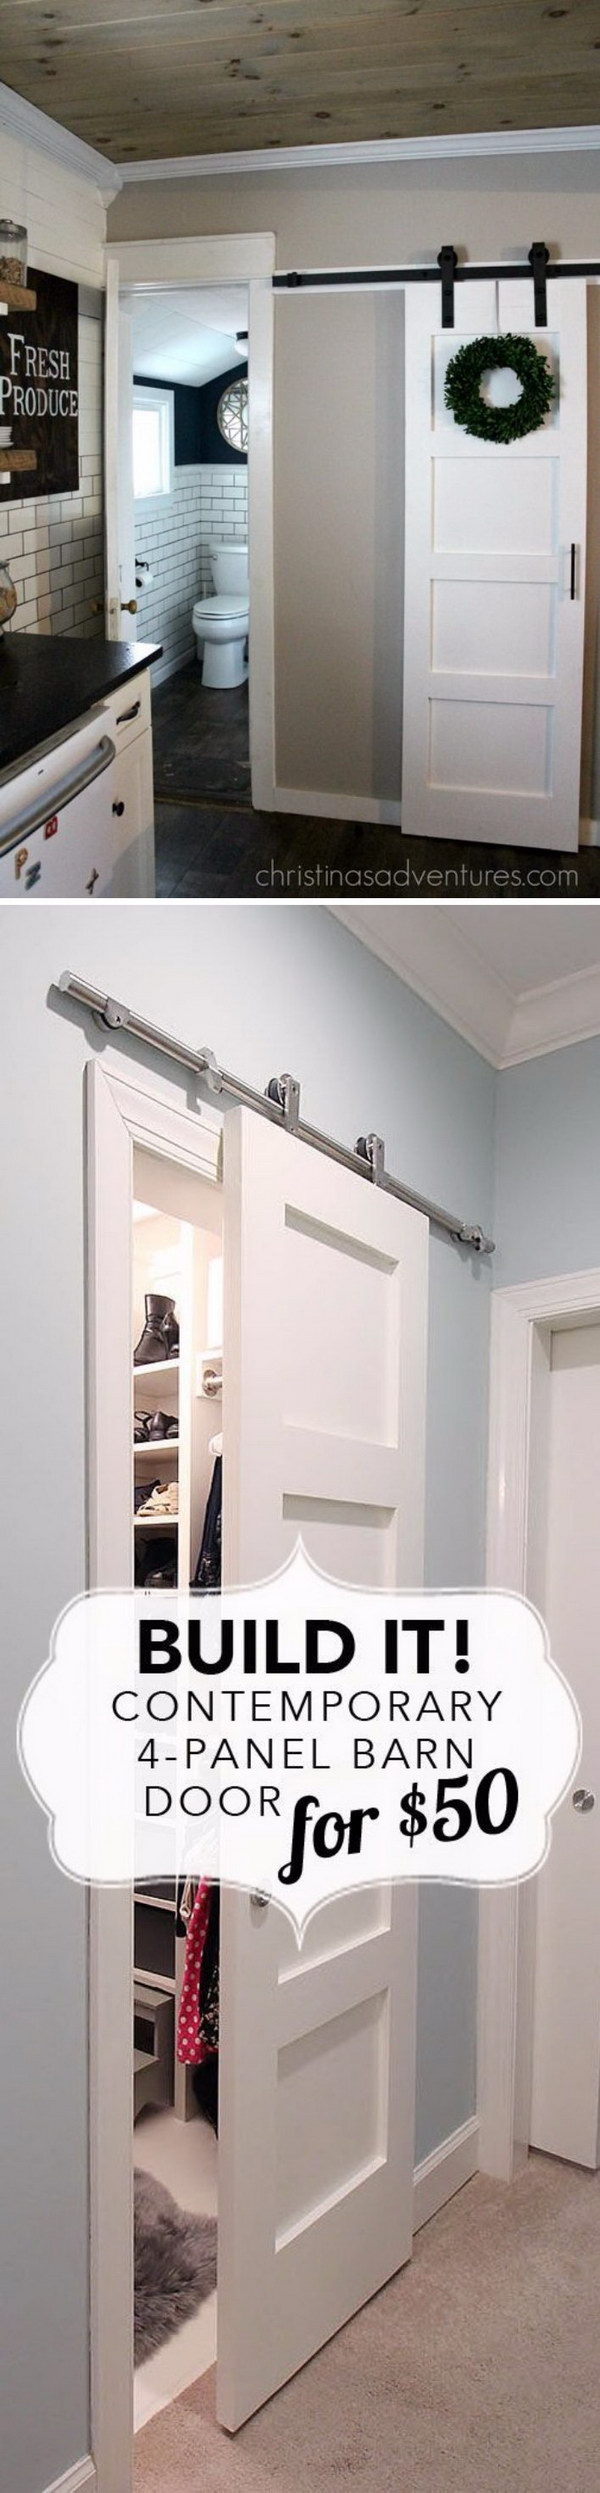 Living Space Too Small Try These Hacks To Squeeze In More Storage